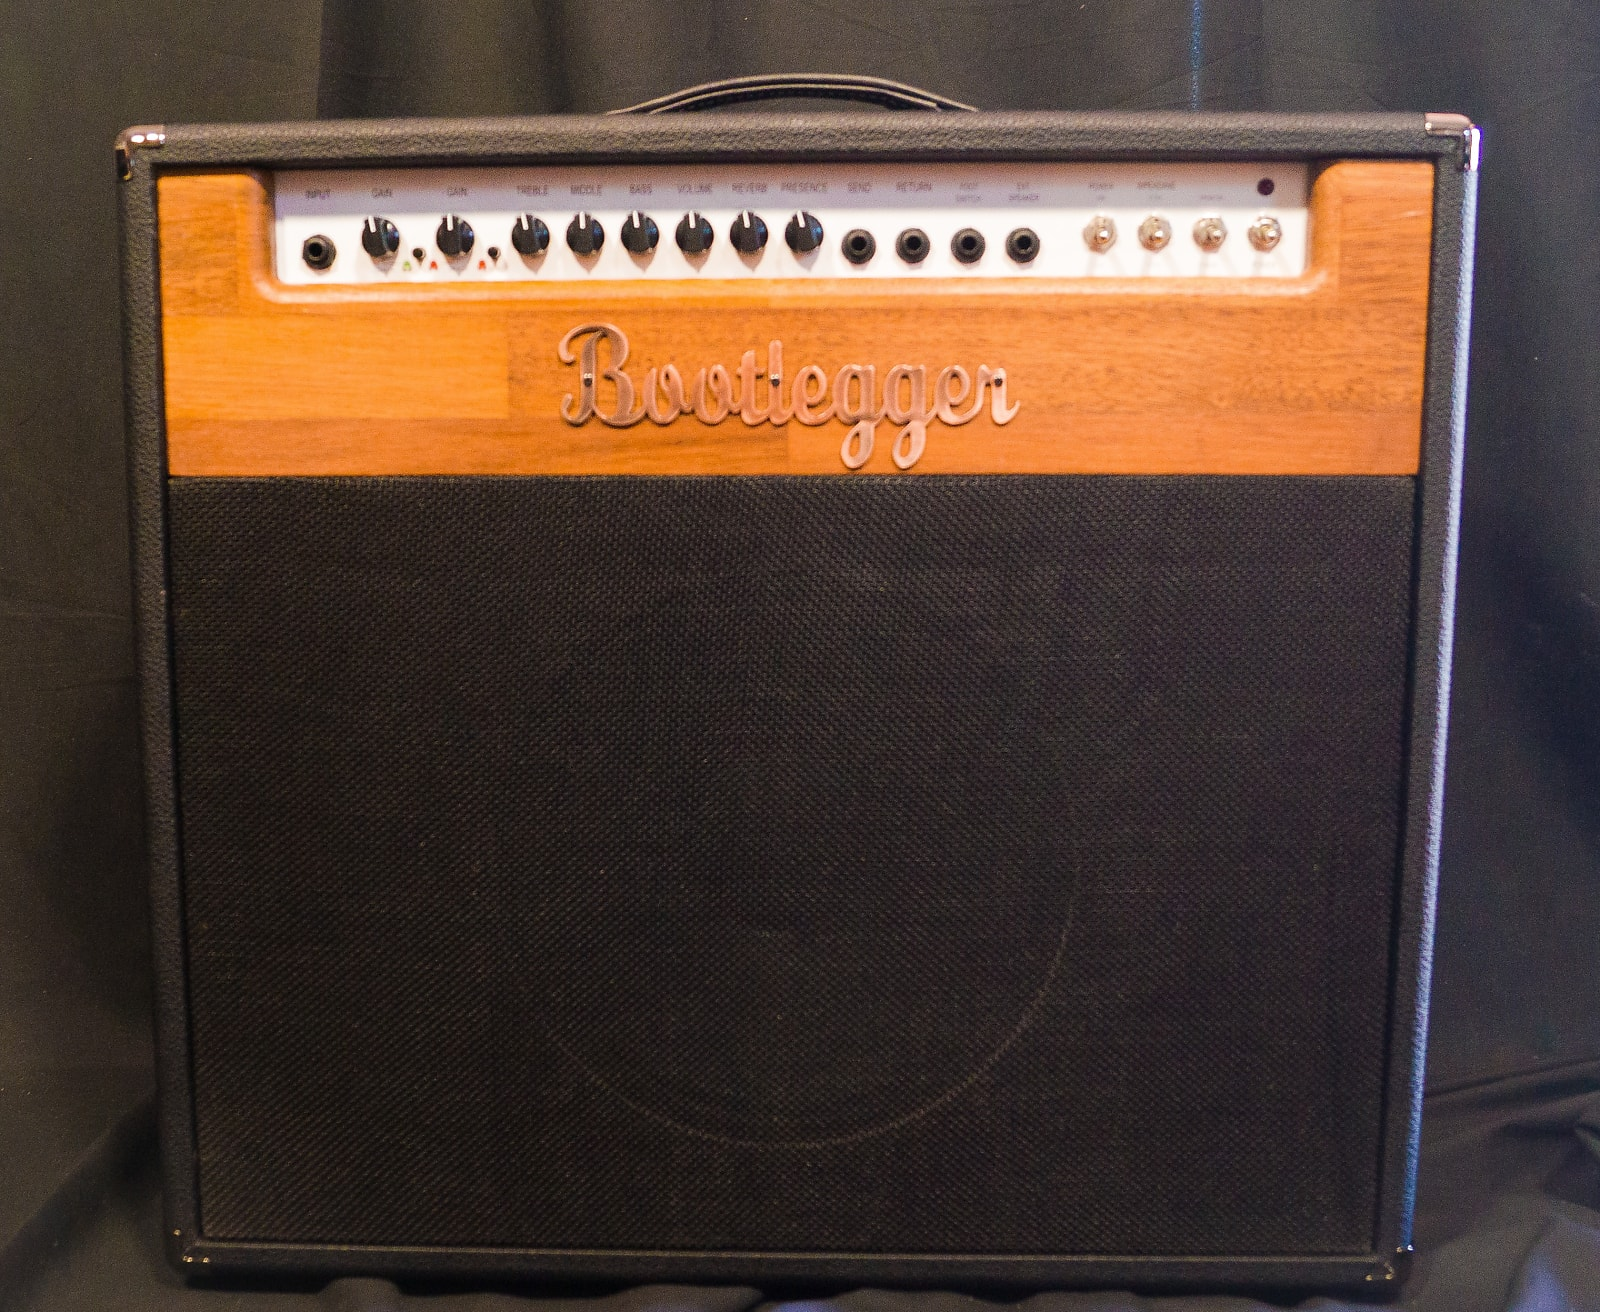 Blues 15/30 pre sale price 1  x 12 Combo 6L6 Tube Guitar Amp Both Switchable 15 or 30 Watt Amp